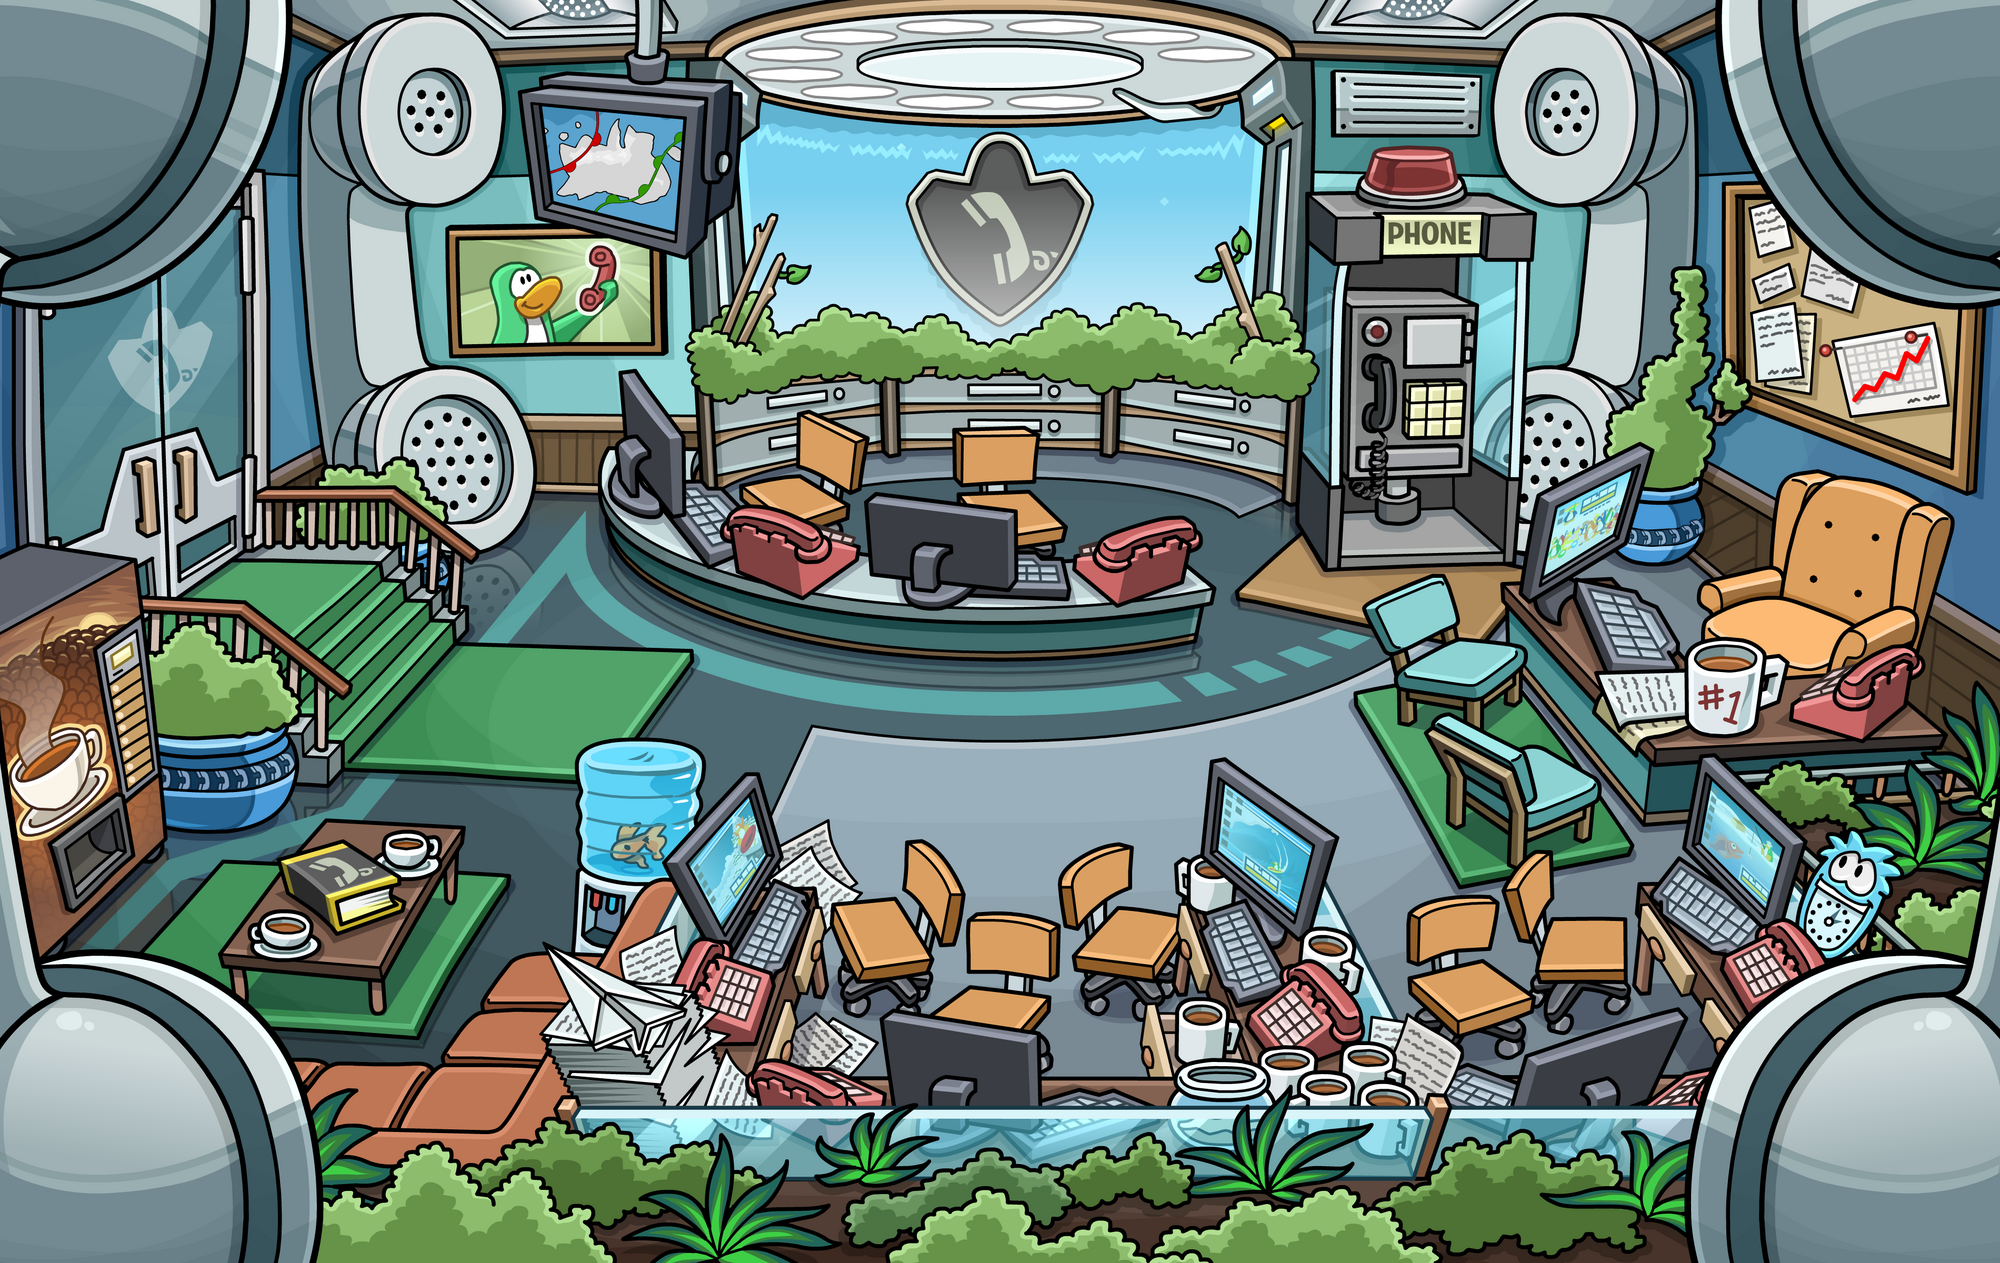 2000?cb=20150801114341 club penguin boiler room fuse box club wiring diagrams collection club penguin case of the missing coins fuse box at honlapkeszites.co